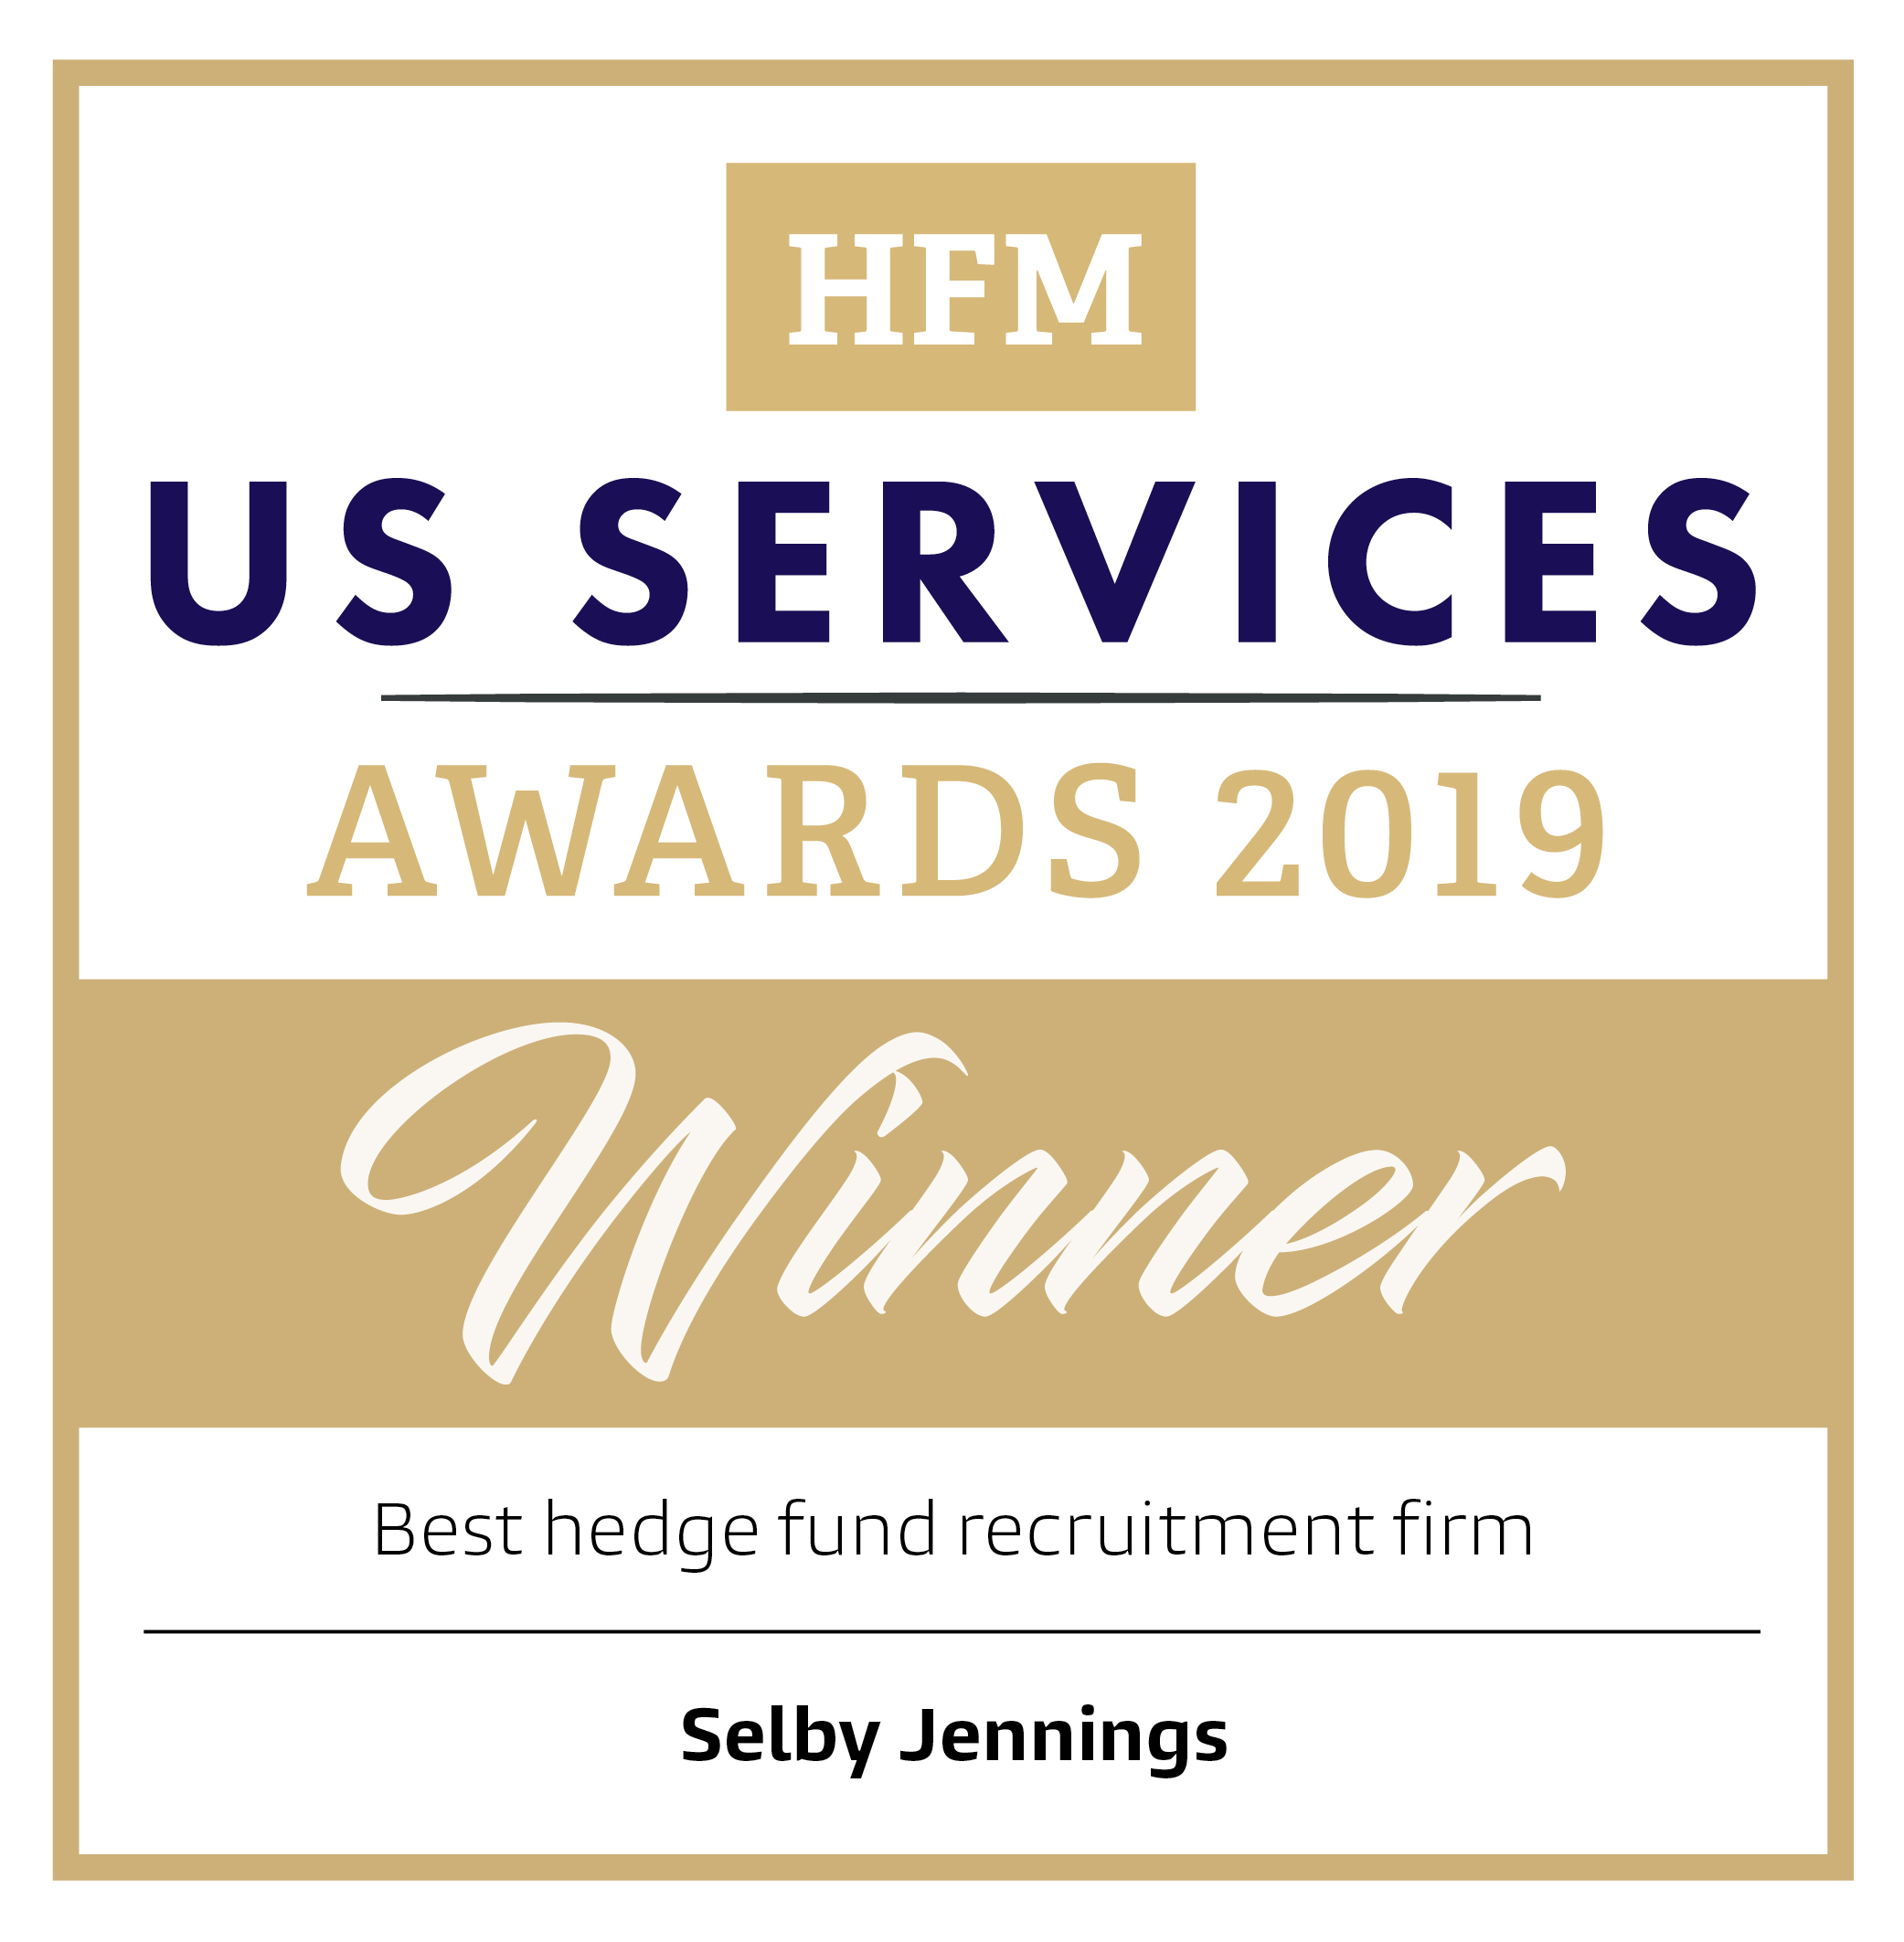 HFM Week Best Hedge Fund Recruitment Firm